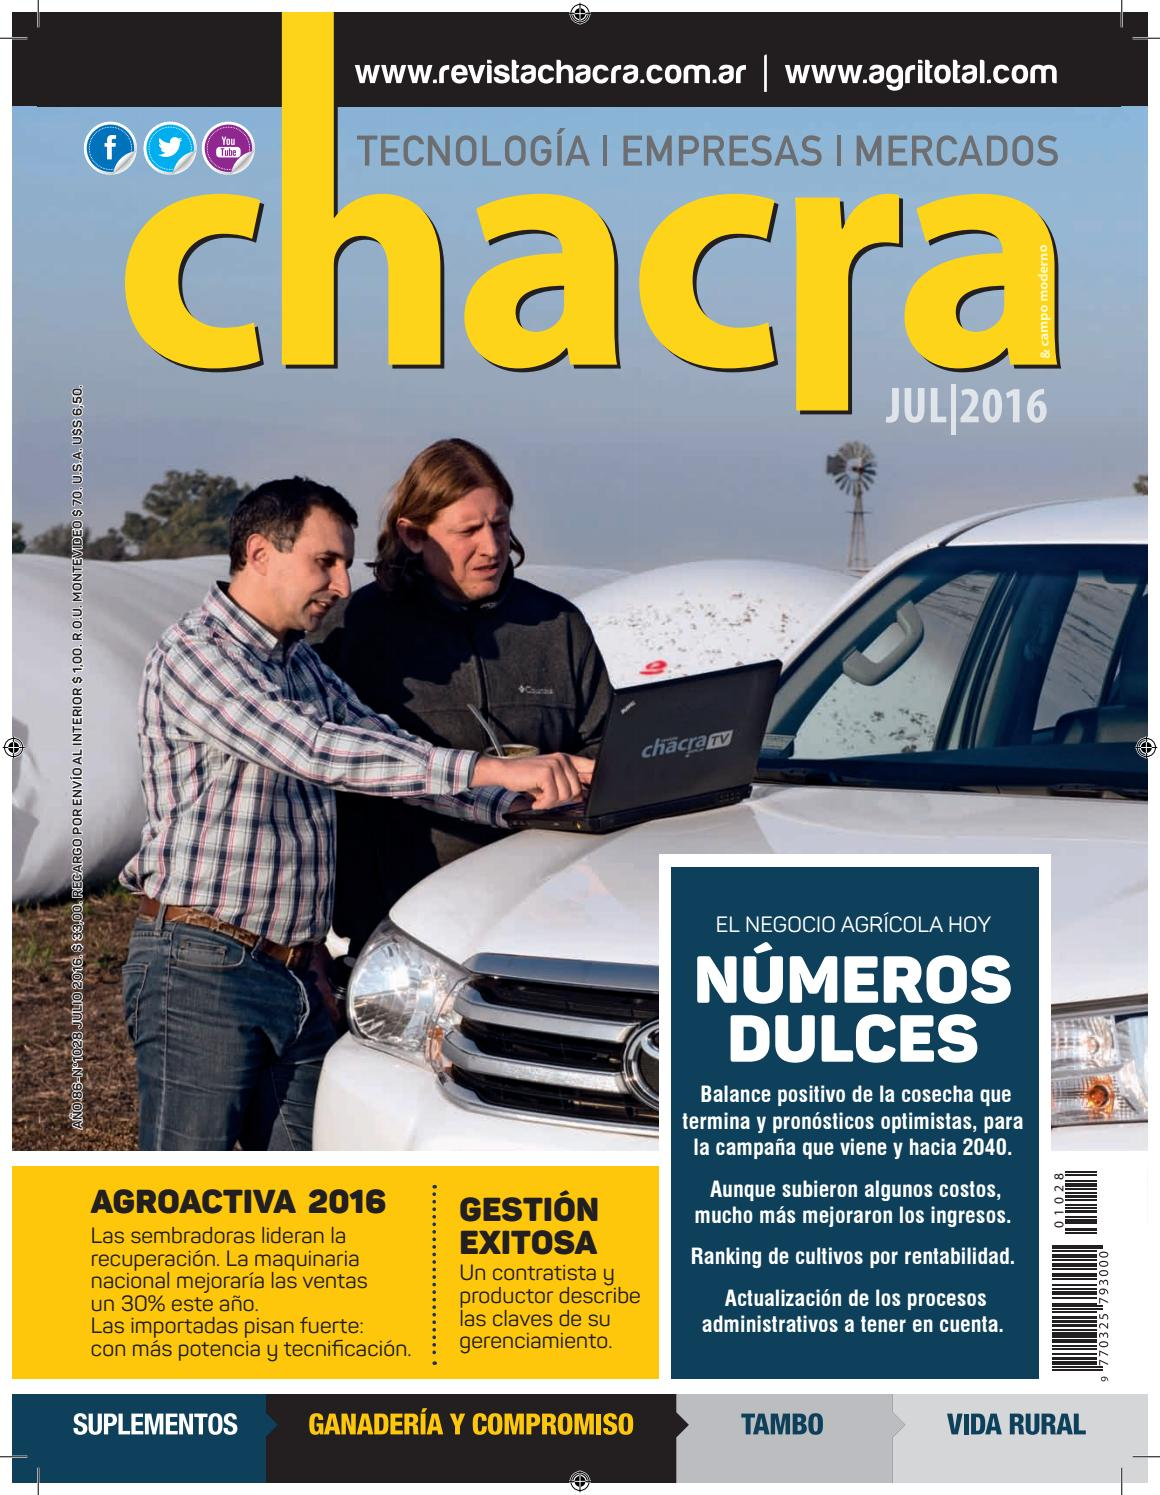 Revista Chacra Nº 1028 - Julio 2016 by Revista Chacra - issuu